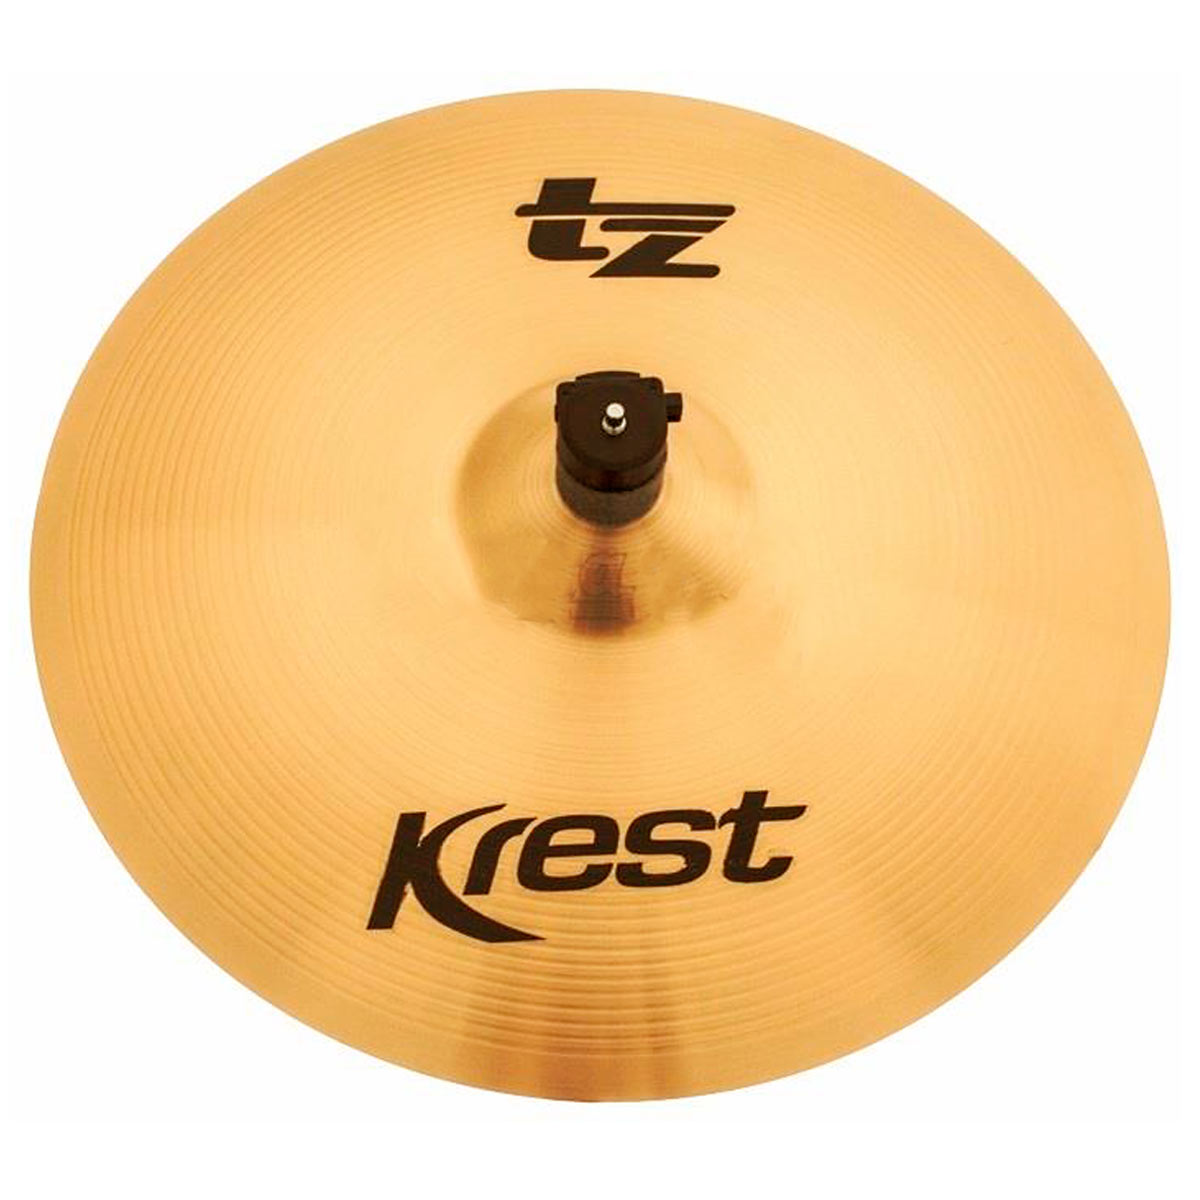 Prato Crash TZ Series 16' Krest Cymbals (Ataque)